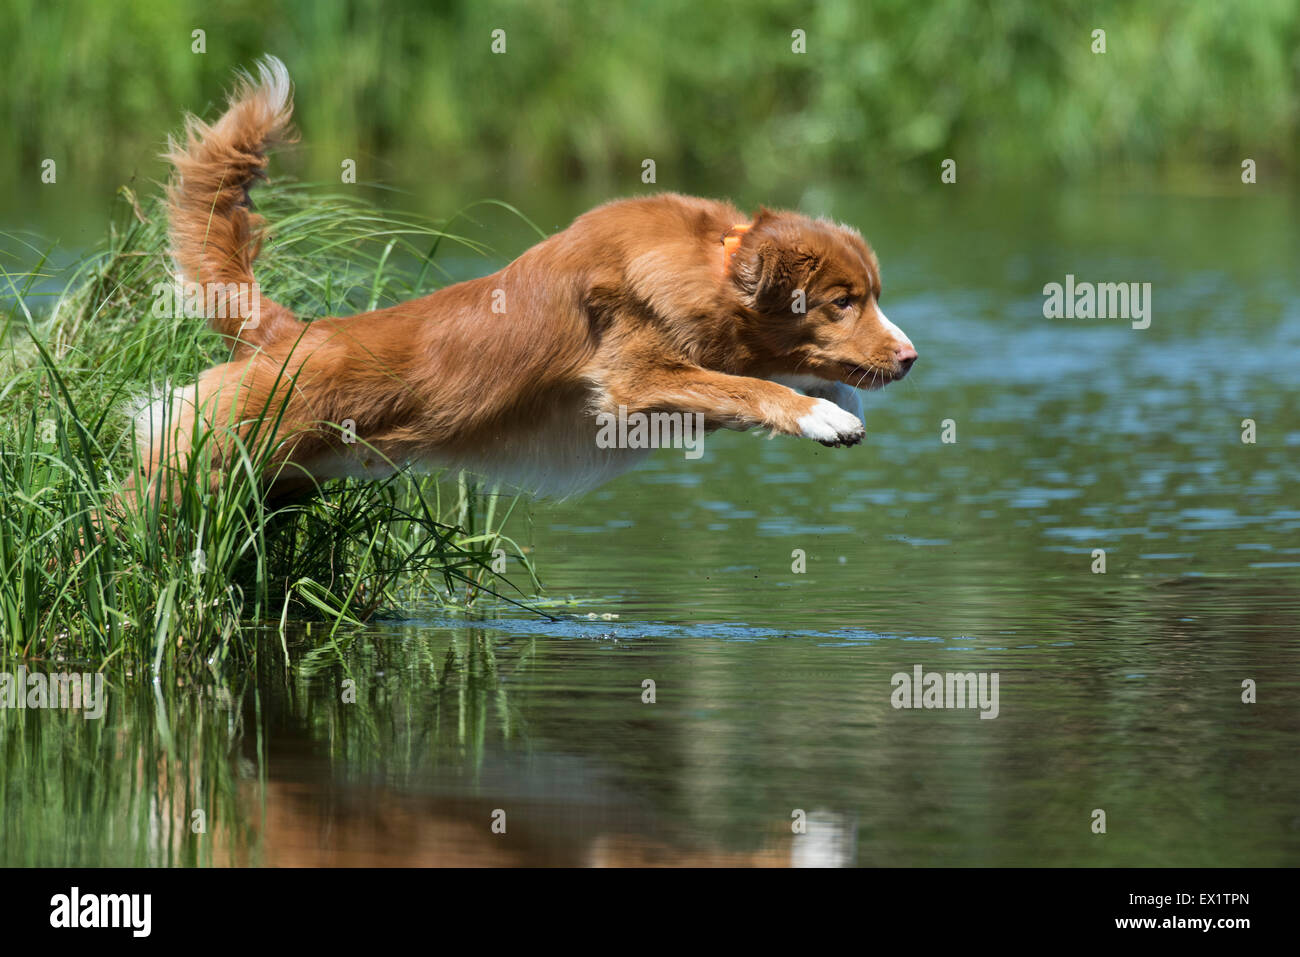 A Nova Scotia Duck Tolling Retriever leaping into the water - Stock Image